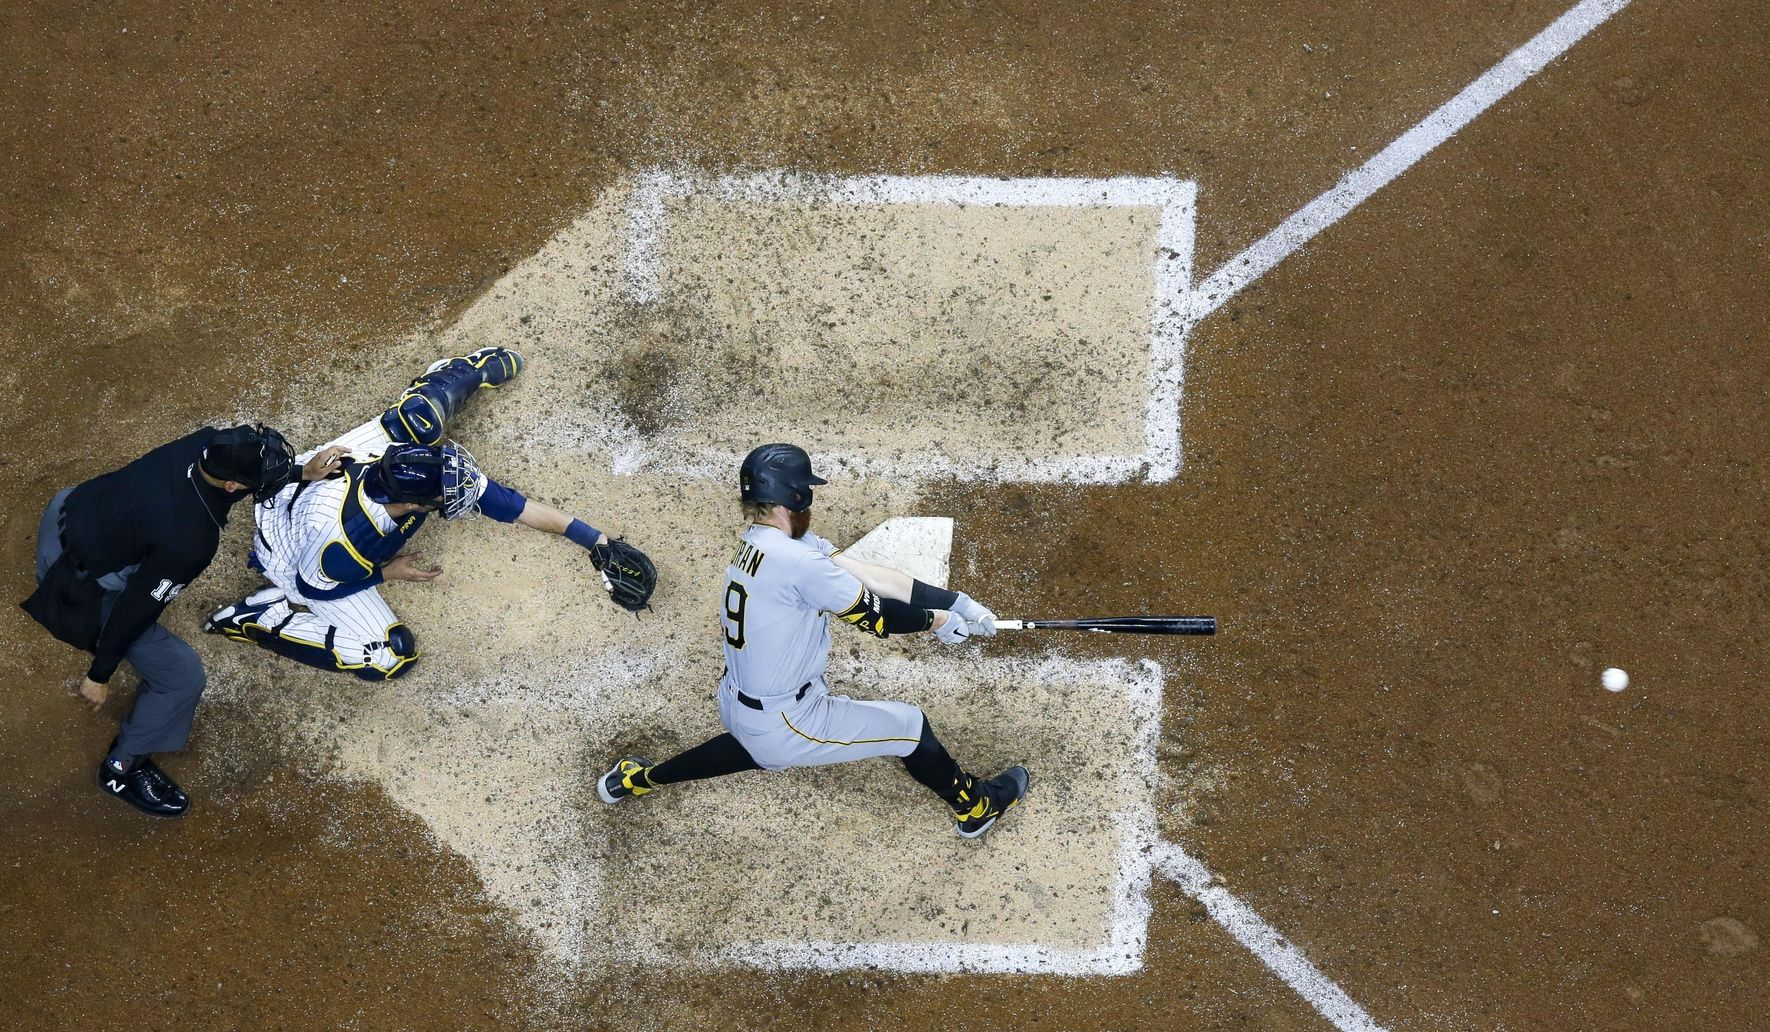 Pirates_brewers_baseball_16430_c0-169-4051-2530_s1770x1032